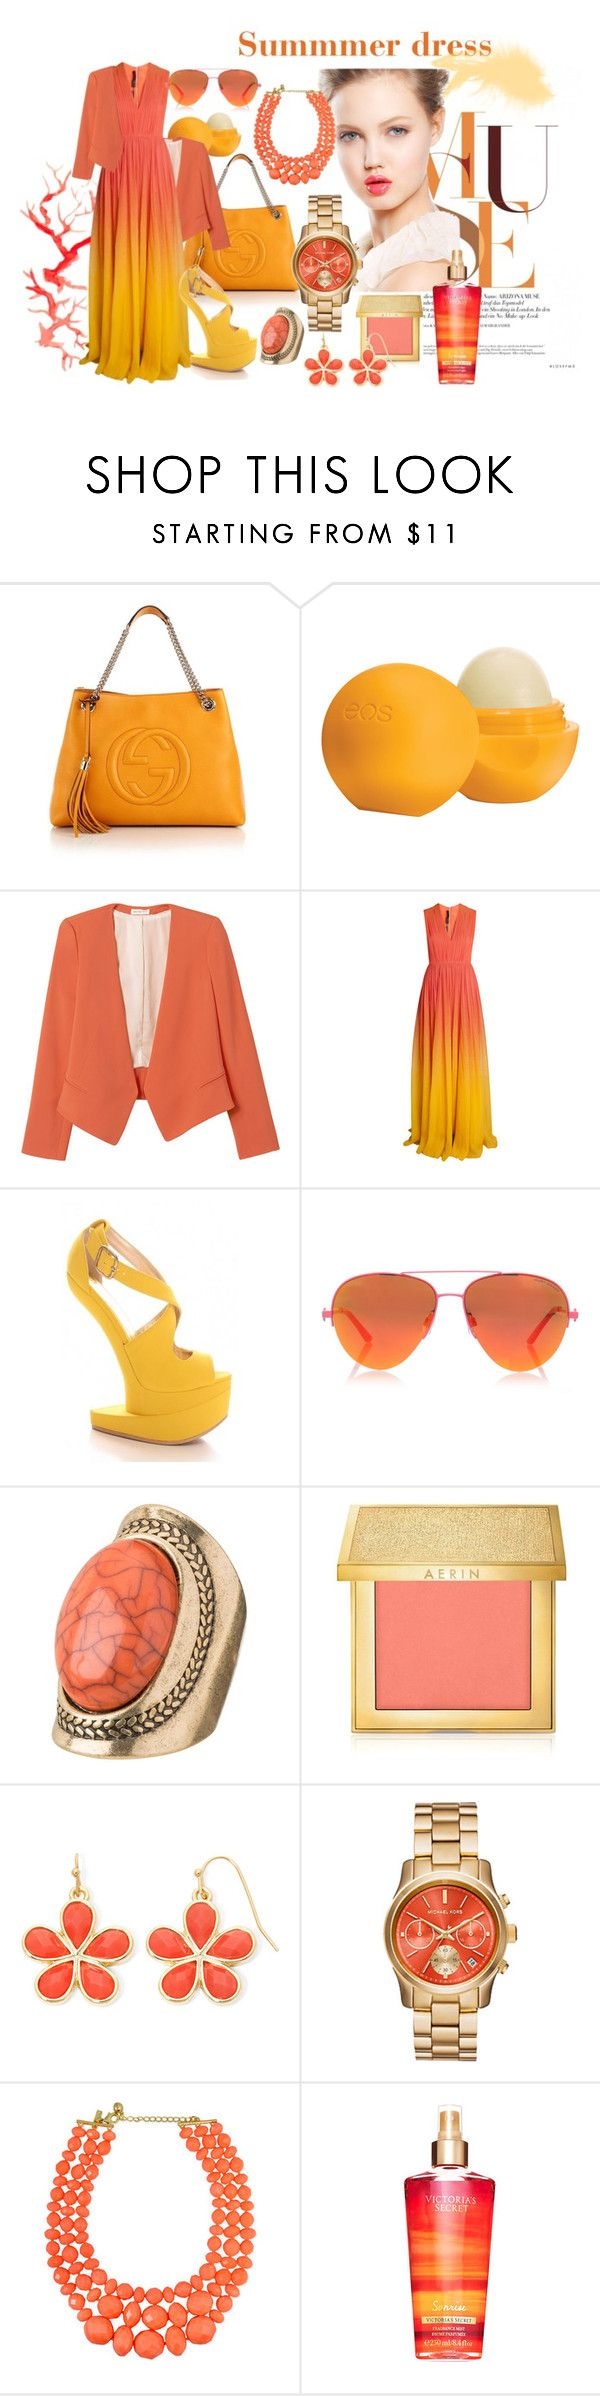 O.C. California by iris234 on Polyvore featuring Elie Saab, Rebecca Taylor, Gucci, Liz Claiborne, maurices, Kurt Geiger, AERIN, Eos and Jill Stuart